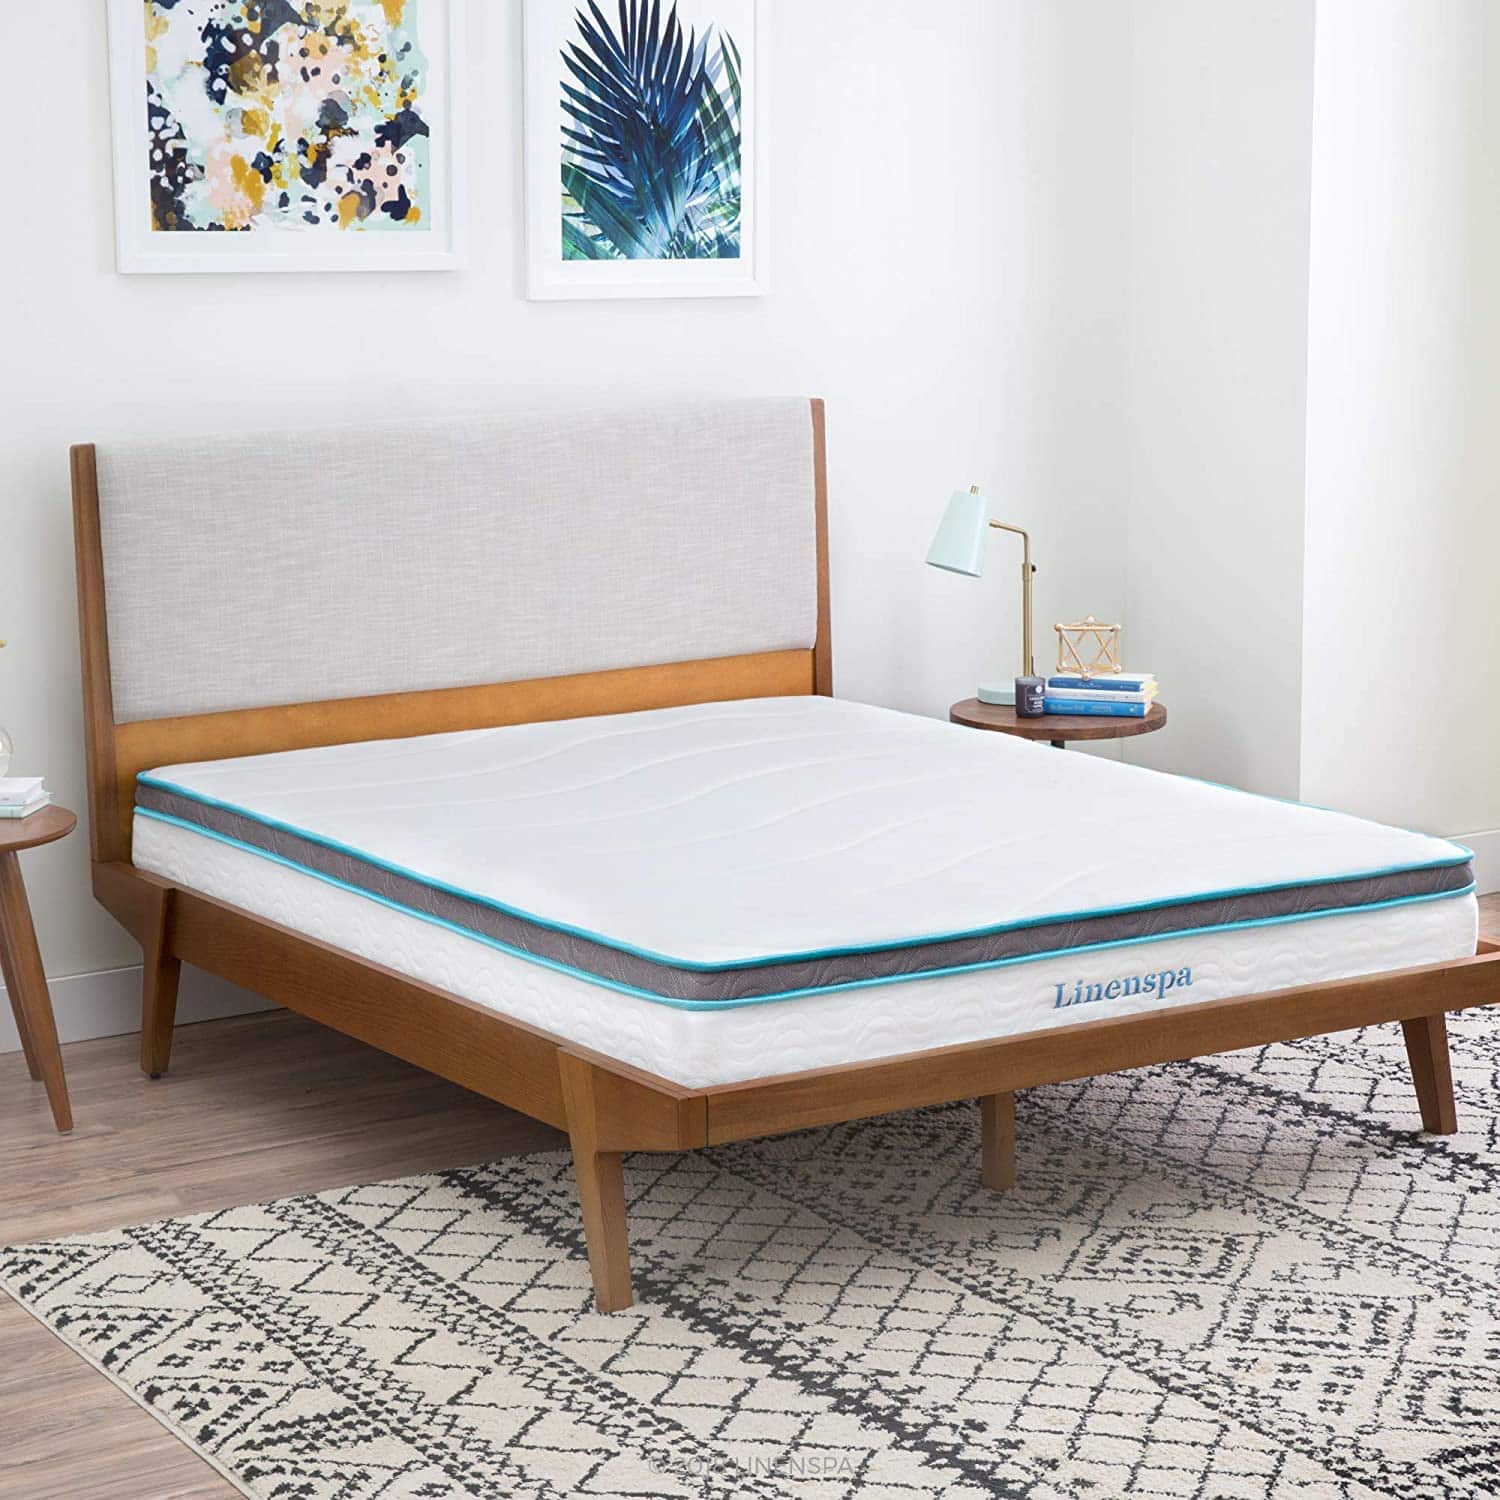 Linenspa 8-Inch Memory Foam and Innerspring Hybrid Mattress